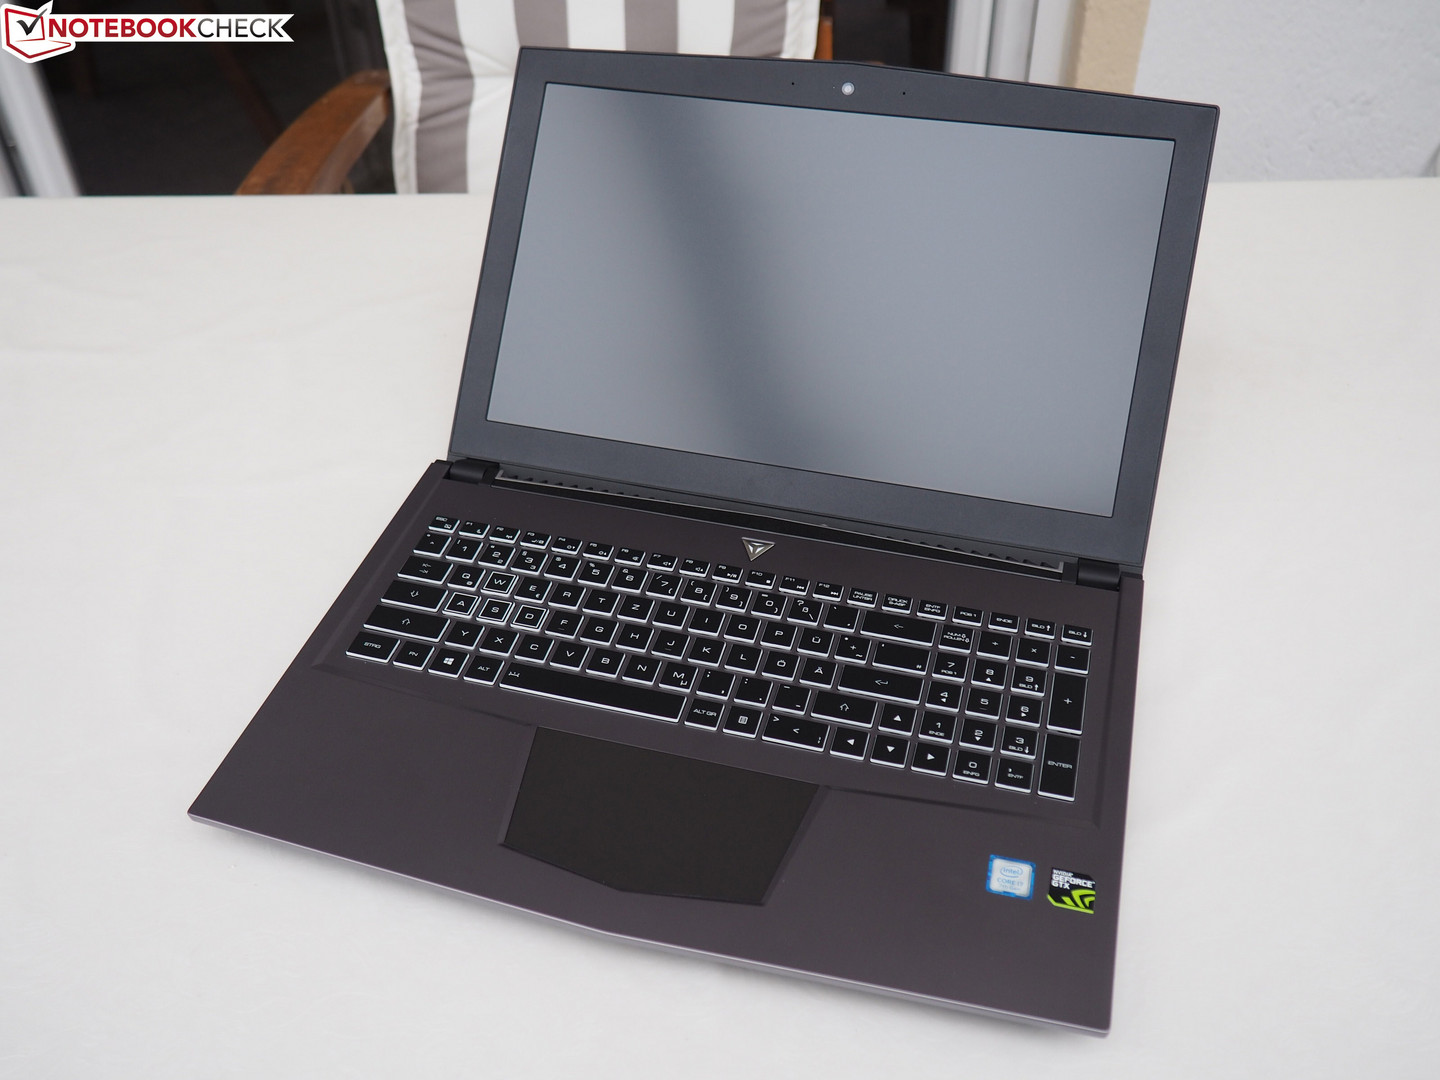 ACER TRAVELMATE 210 SERIES ALI AUDIO DRIVERS FOR WINDOWS XP